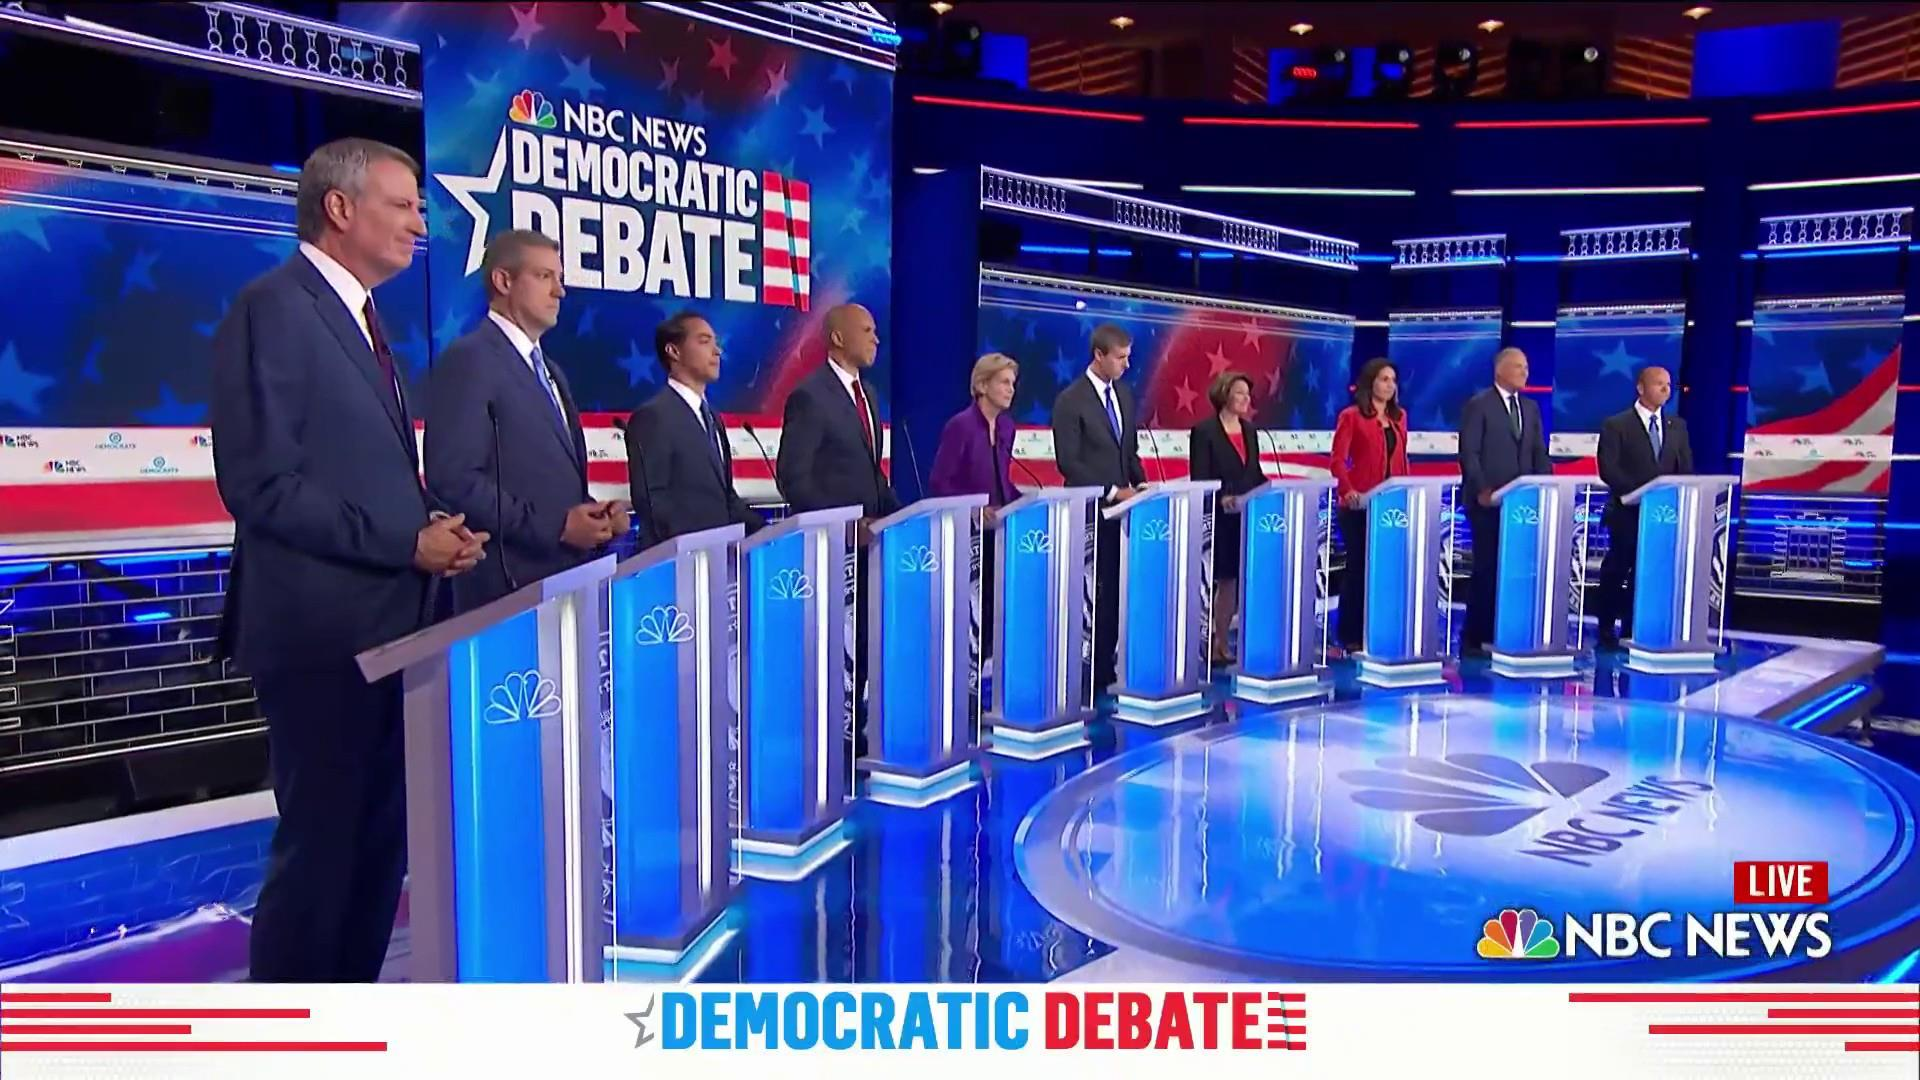 Watch closing statements of the Democratic debate's first night